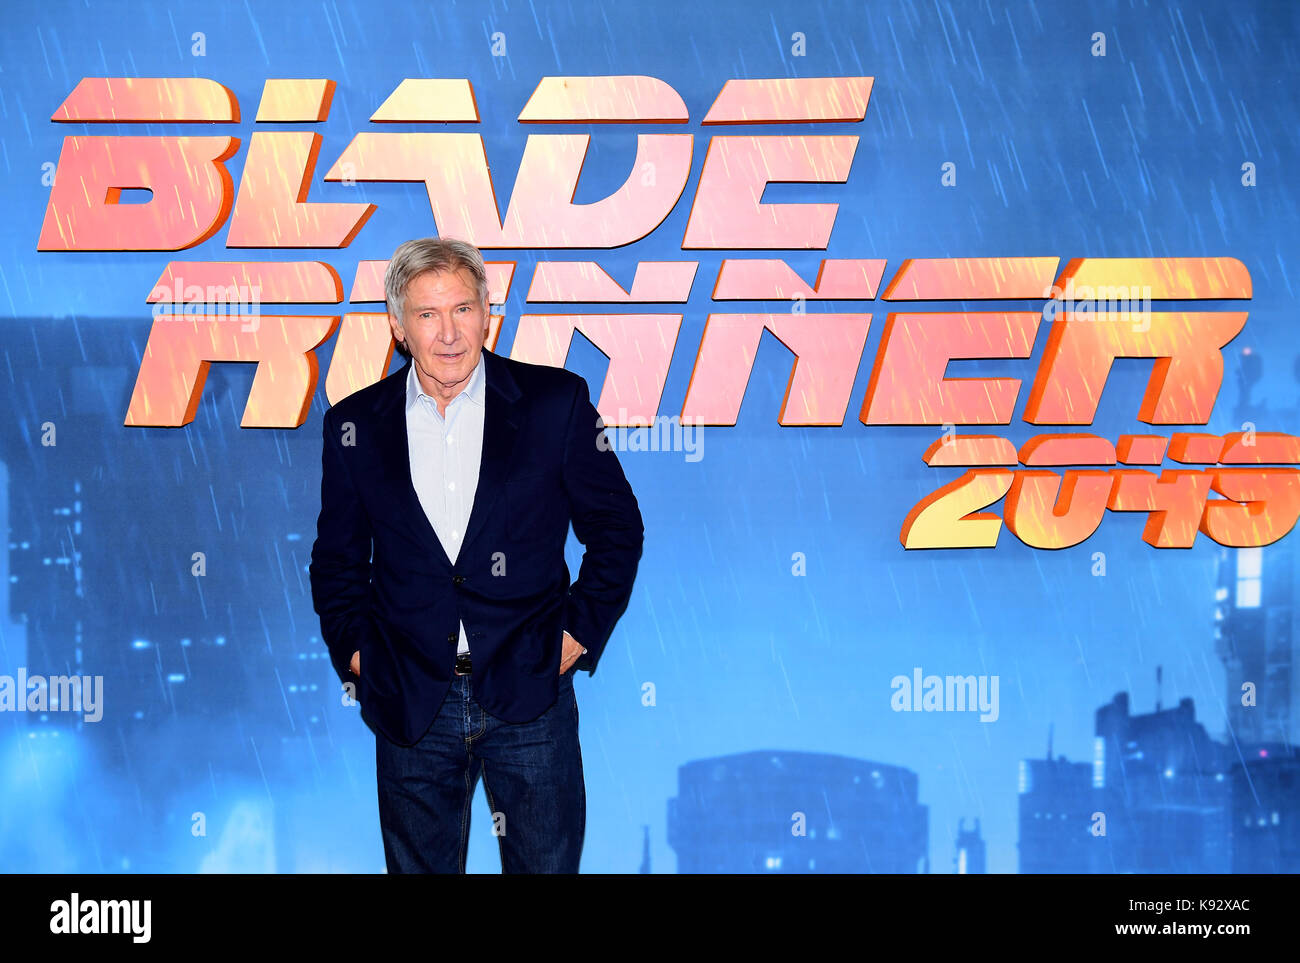 Harrison Ford attending the Blade Runner 2049 photocall at the Corinthia Hotel, London. - Stock Image